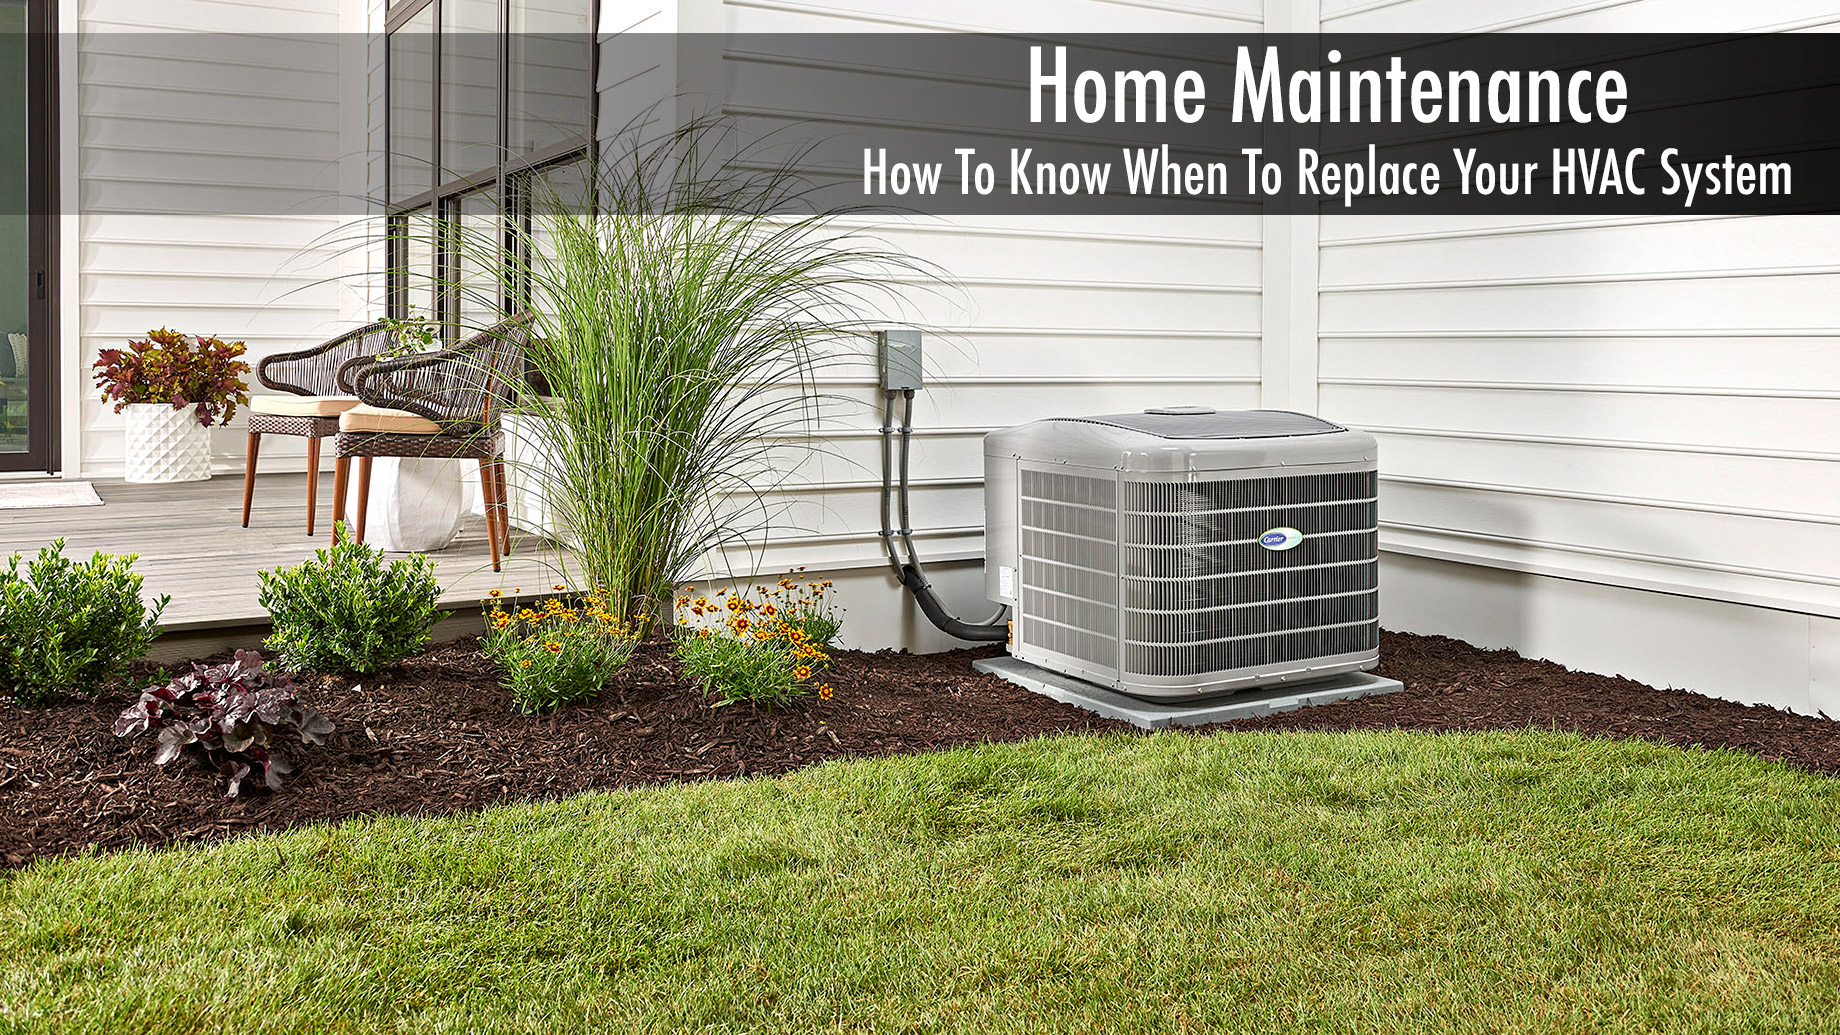 Home Maintenance - How To Know When To Replace Your HVAC System